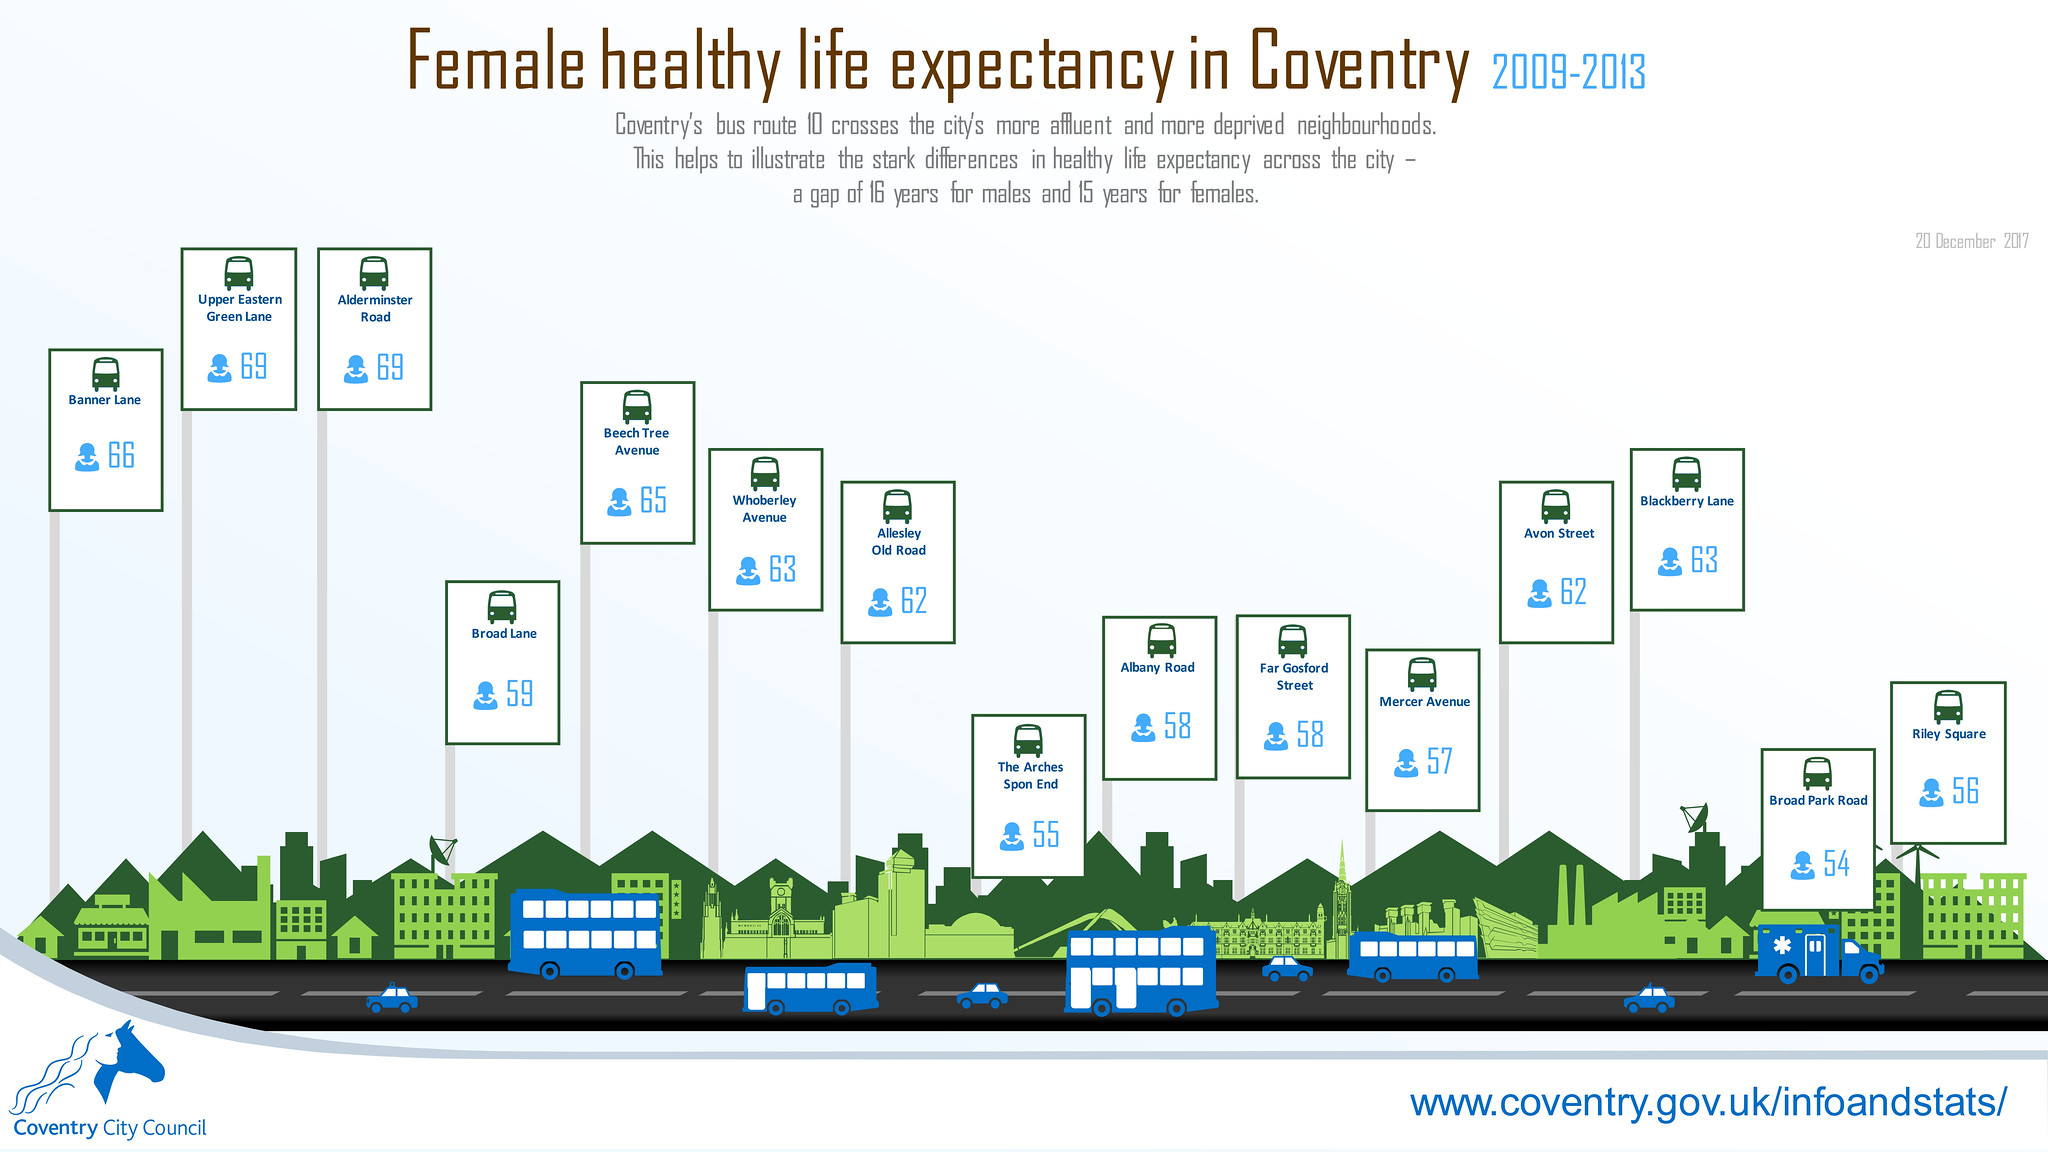 Female healthy life expectancy along Coventry bus route 10 infographic (December 2017)